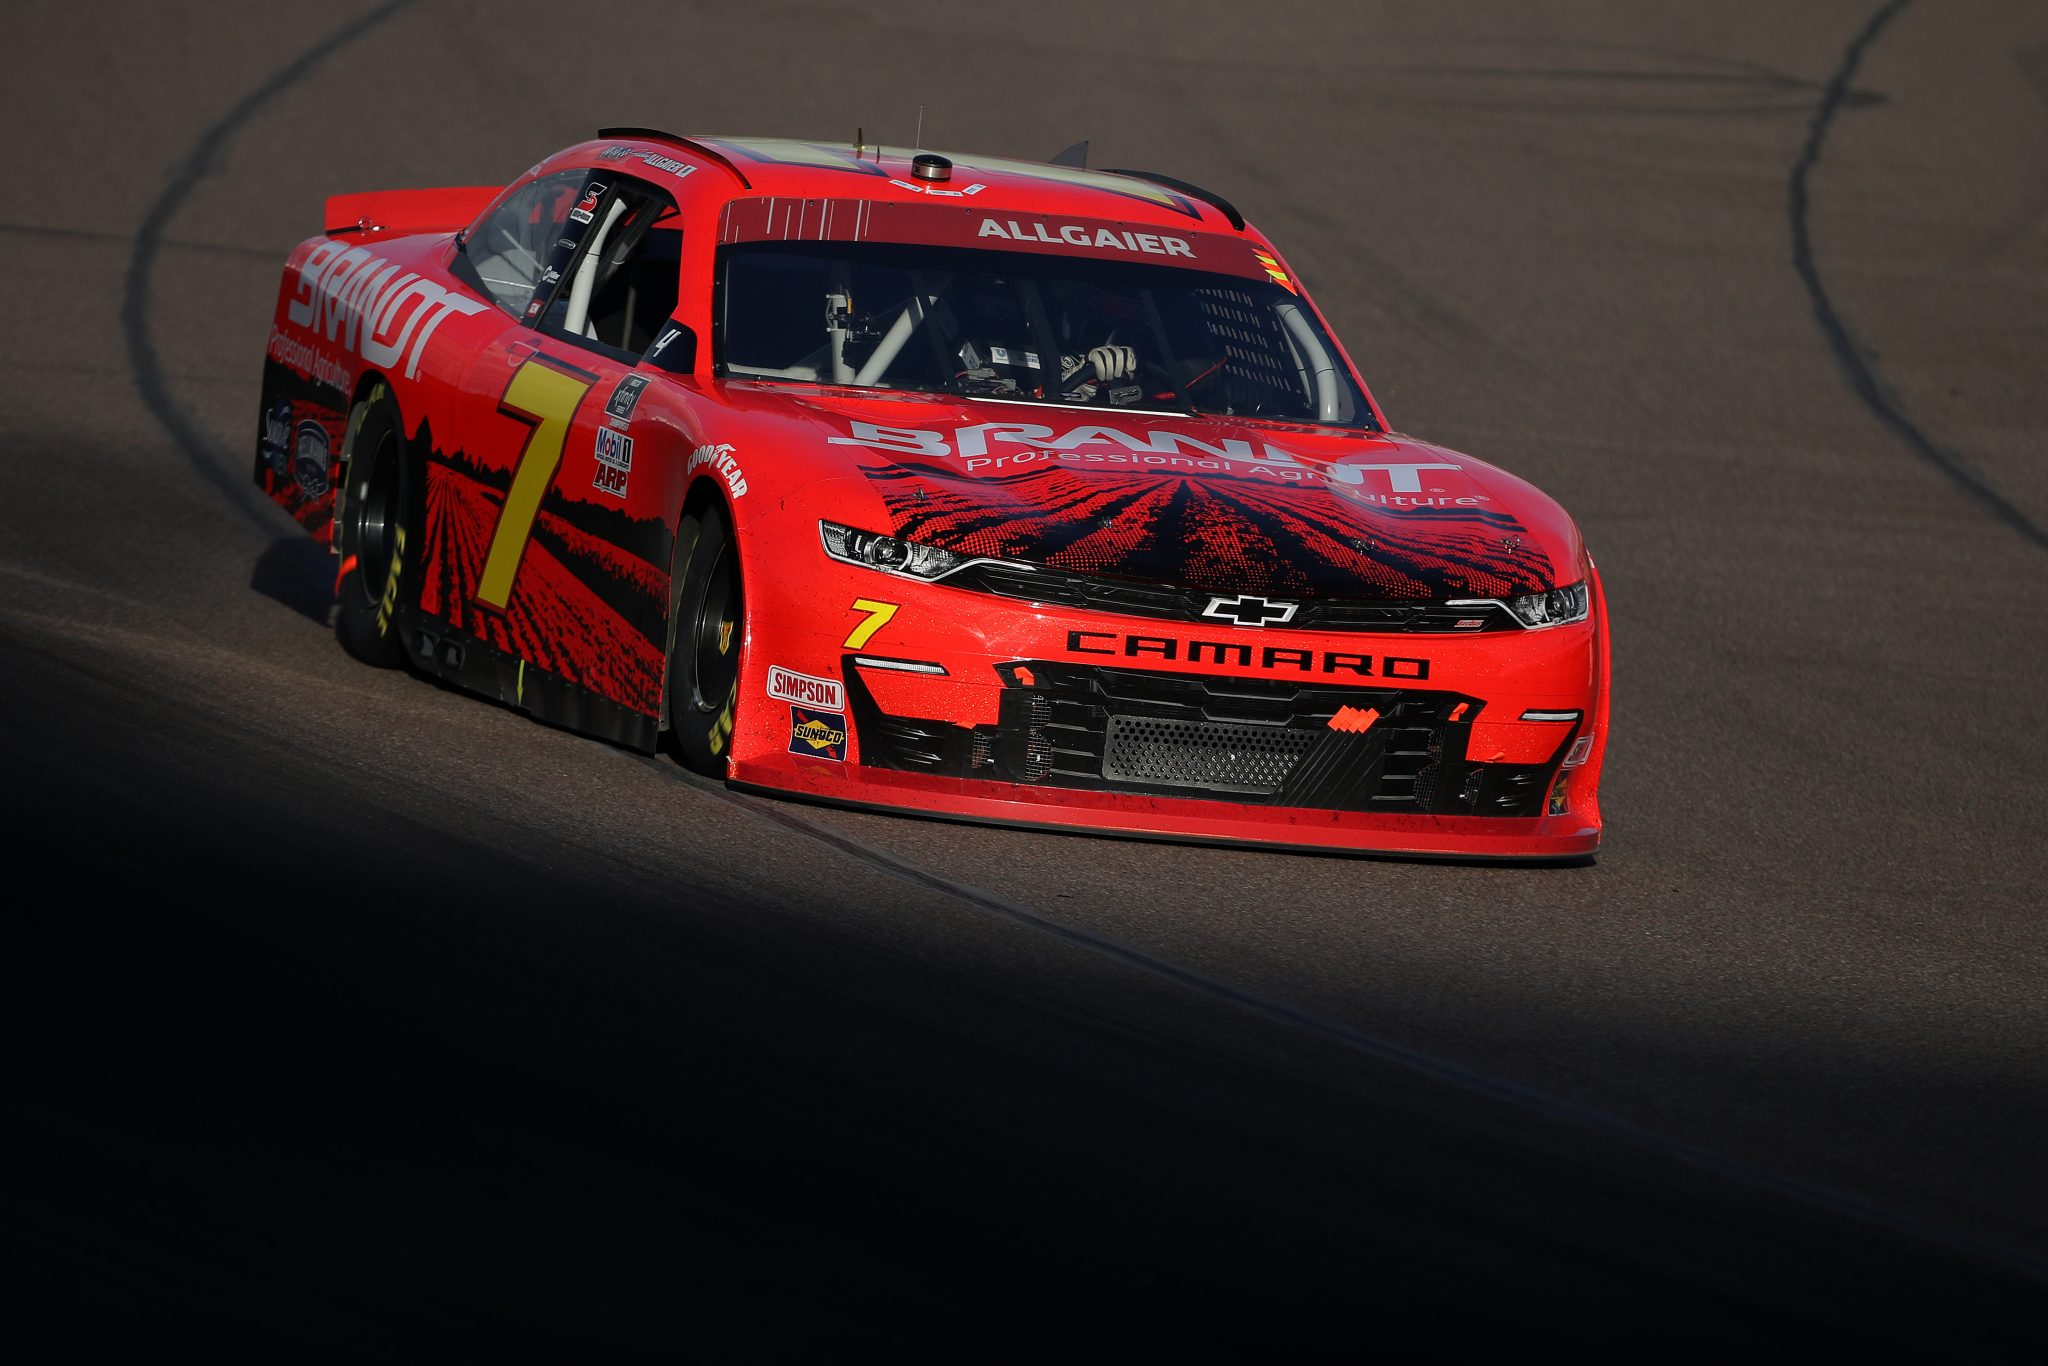 AVONDALE, ARIZONA - NOVEMBER 07: Justin Allgaier, driver of the #7 BRANDT Chevrolet, drives during the NASCAR Xfinity Series Desert Diamond Casino West Valley 200 at Phoenix Raceway on November 07, 2020 in Avondale, Arizona. (Photo by Christian Petersen/Getty Images) | Getty Images